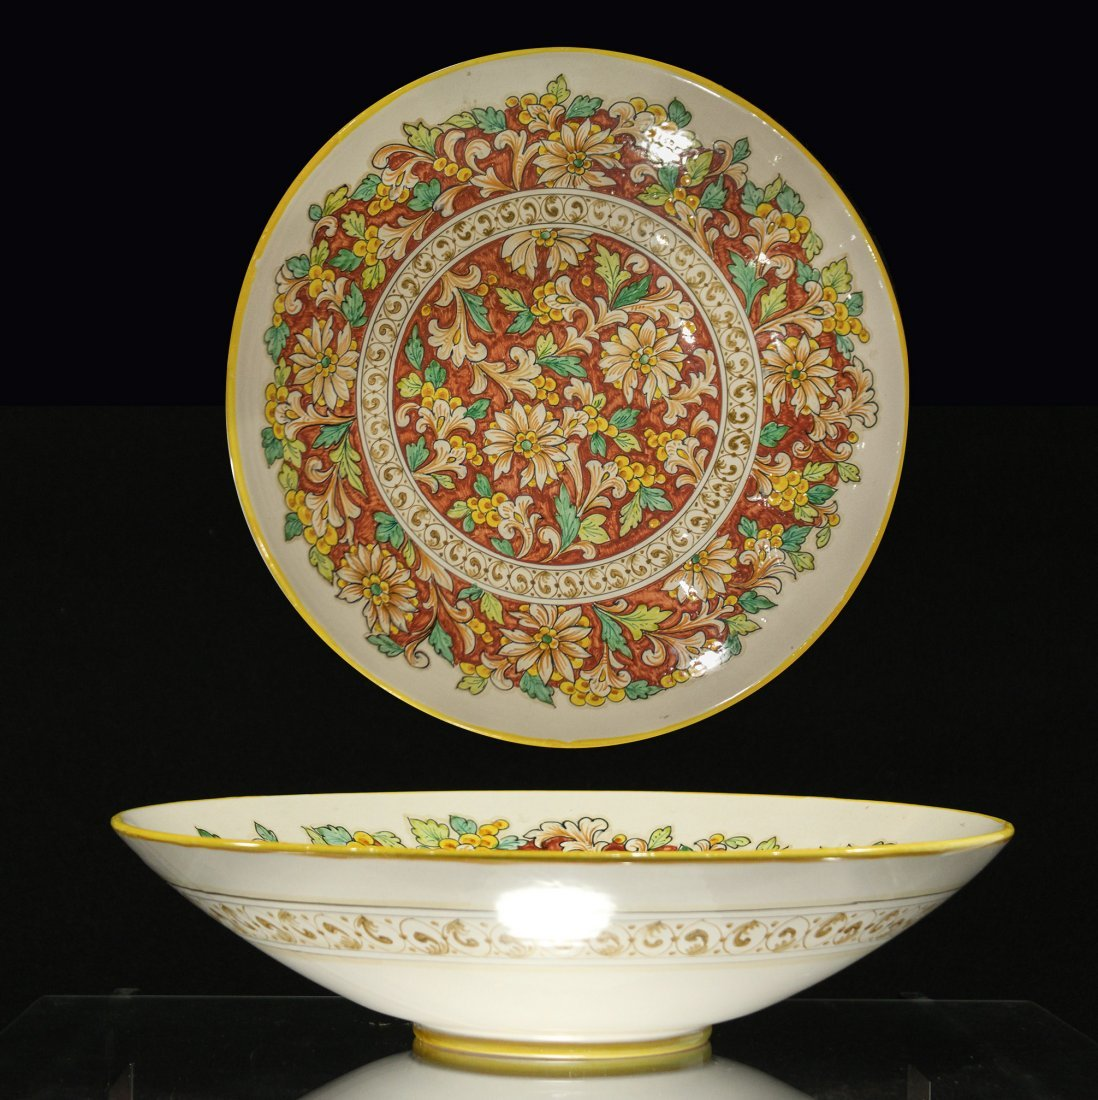 DERUTA ITALY Decorated Glazed Ceramic Center Bowl